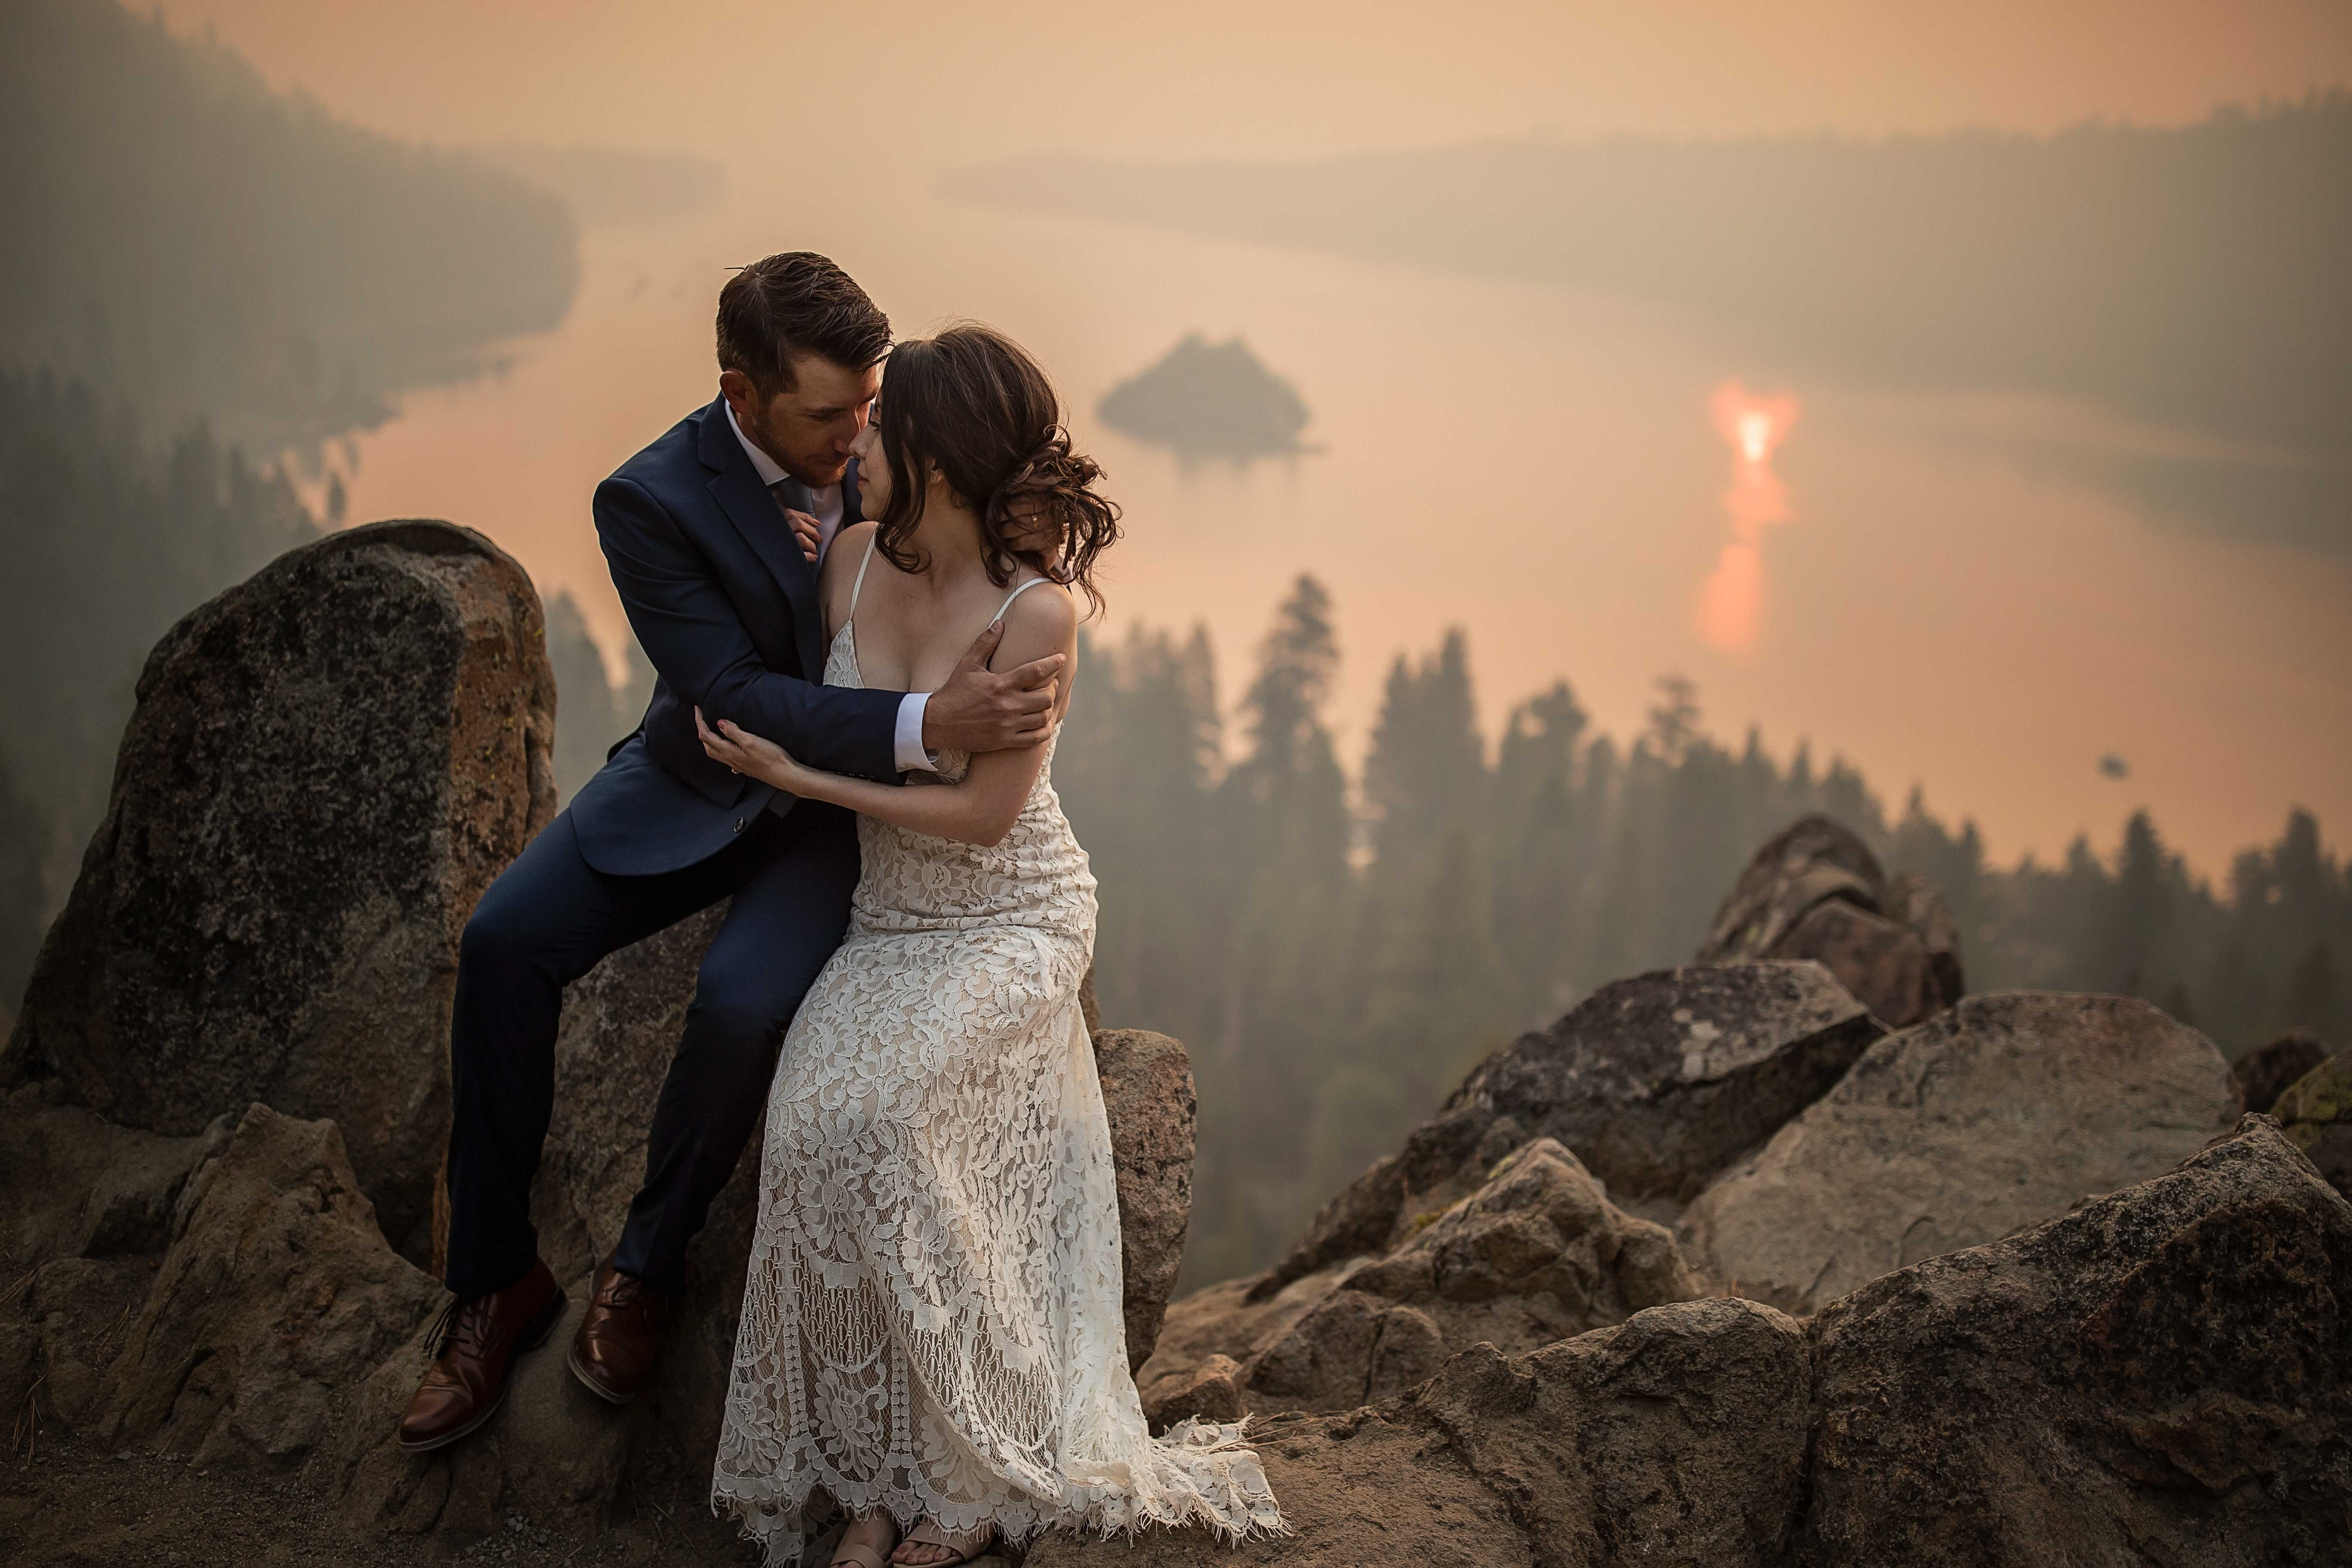 Elopement wedding at Emerald Bay